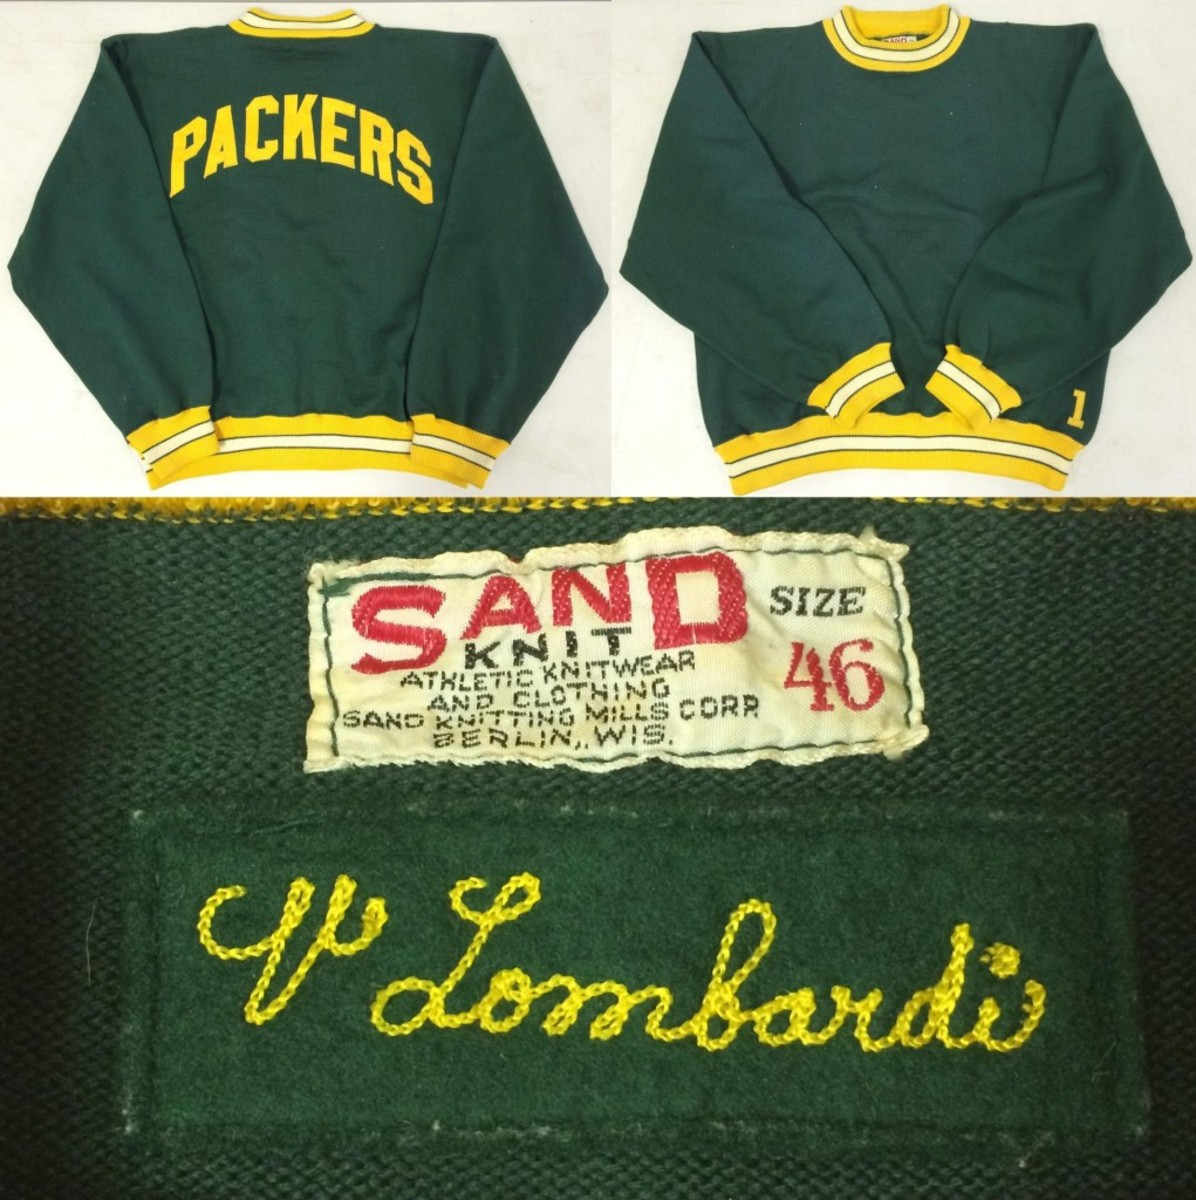 Sand Knit green, gold and white Green Bay Packers sweater previously owned and worn by the late Packers' coaching legend Vince Lombardi ($17,250).